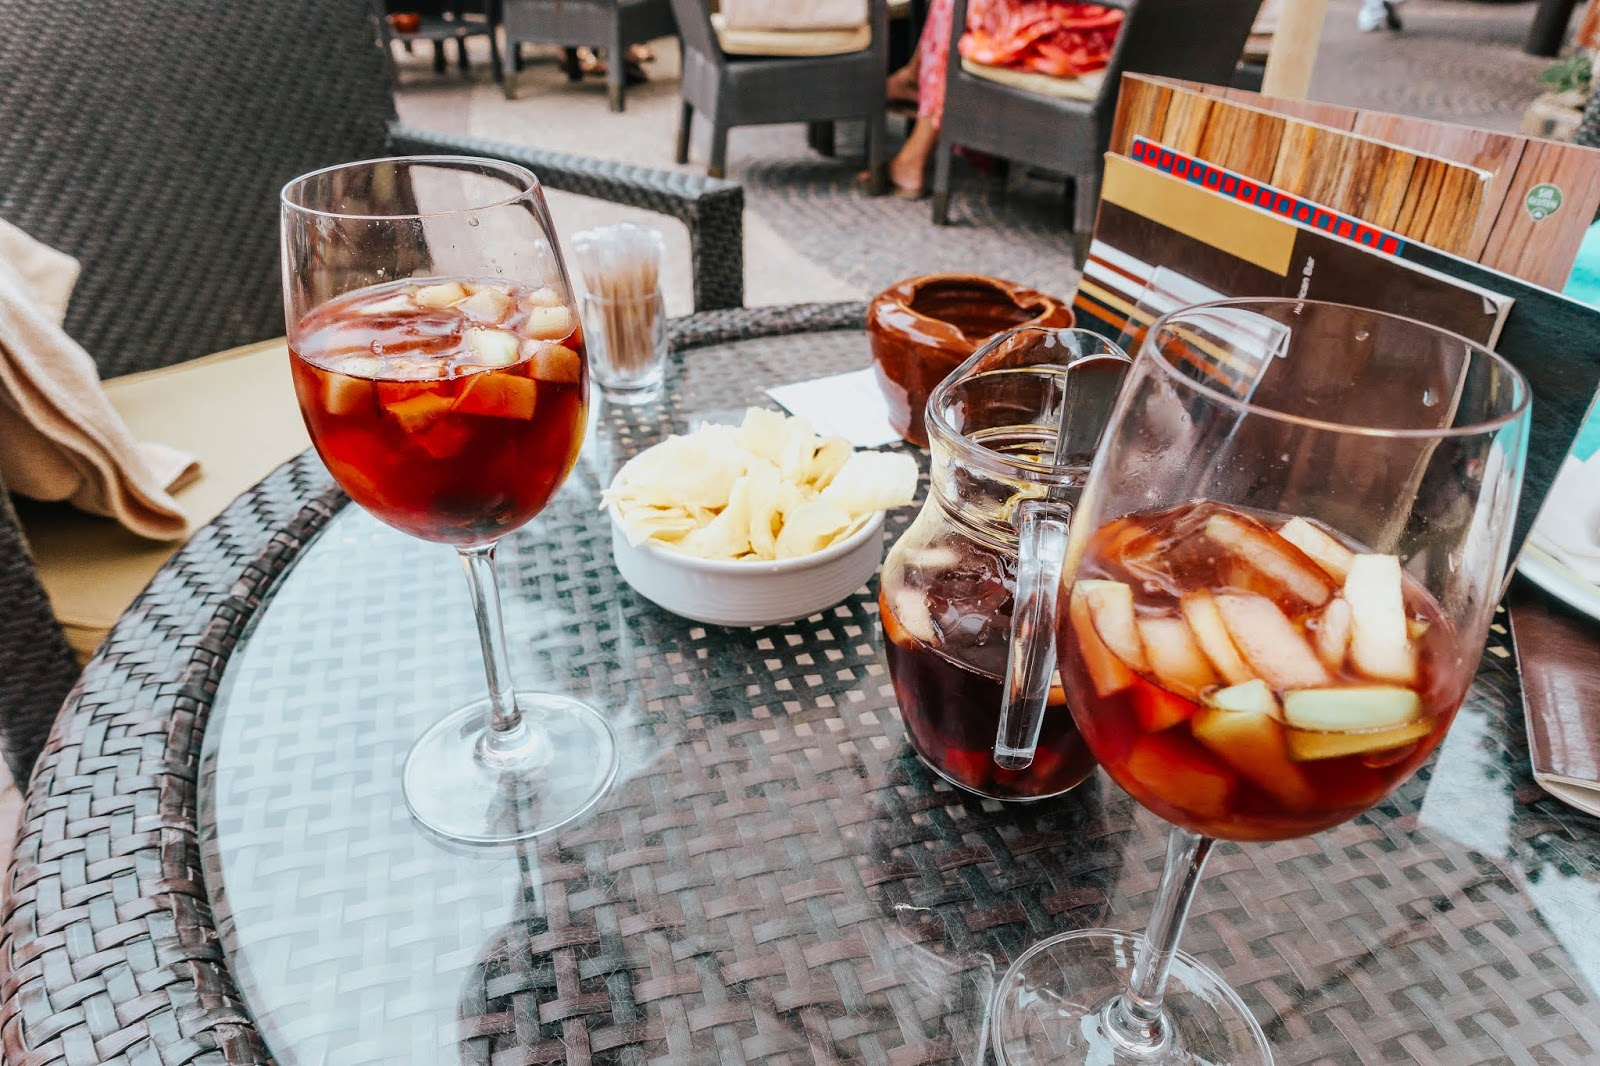 Sangria in Canary Islands